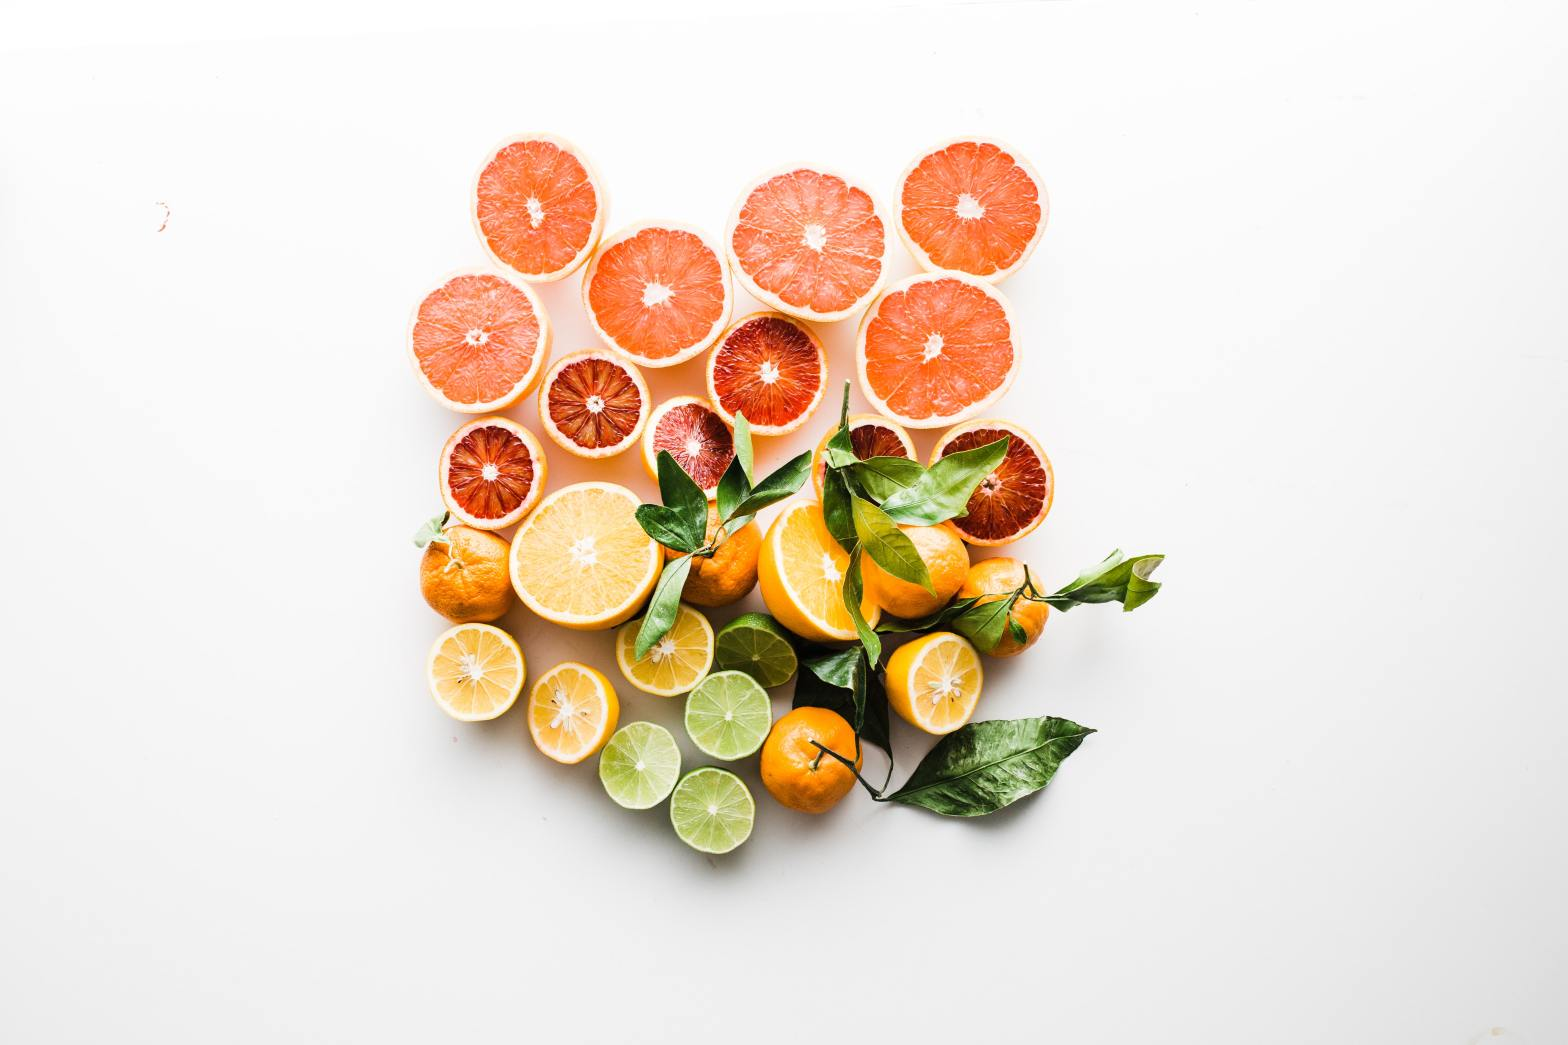 oranges and citrus